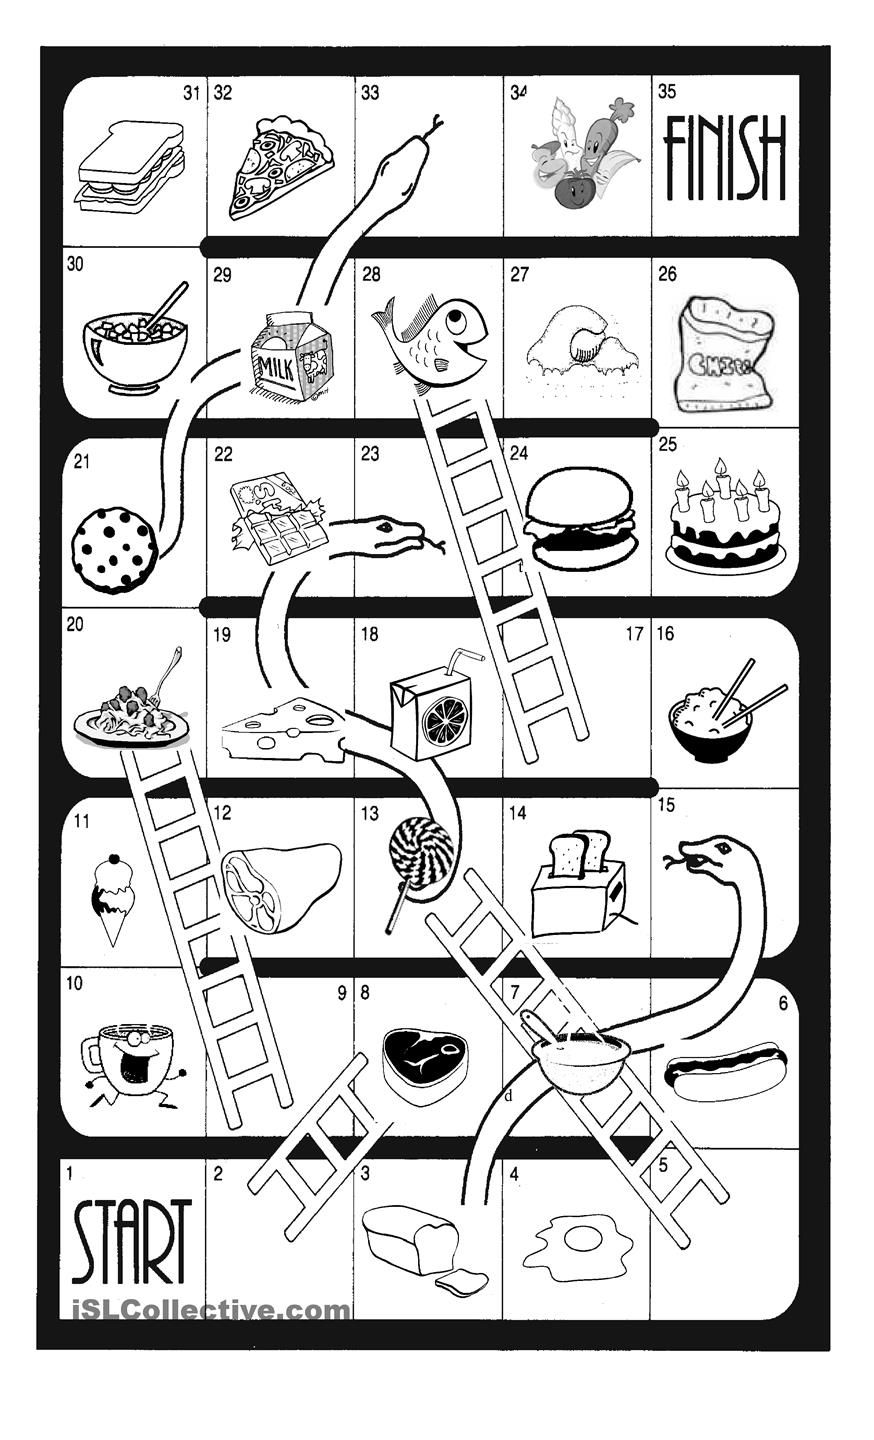 snakes and ladders printable template - snakes and ladders food esol kids pinterest snake